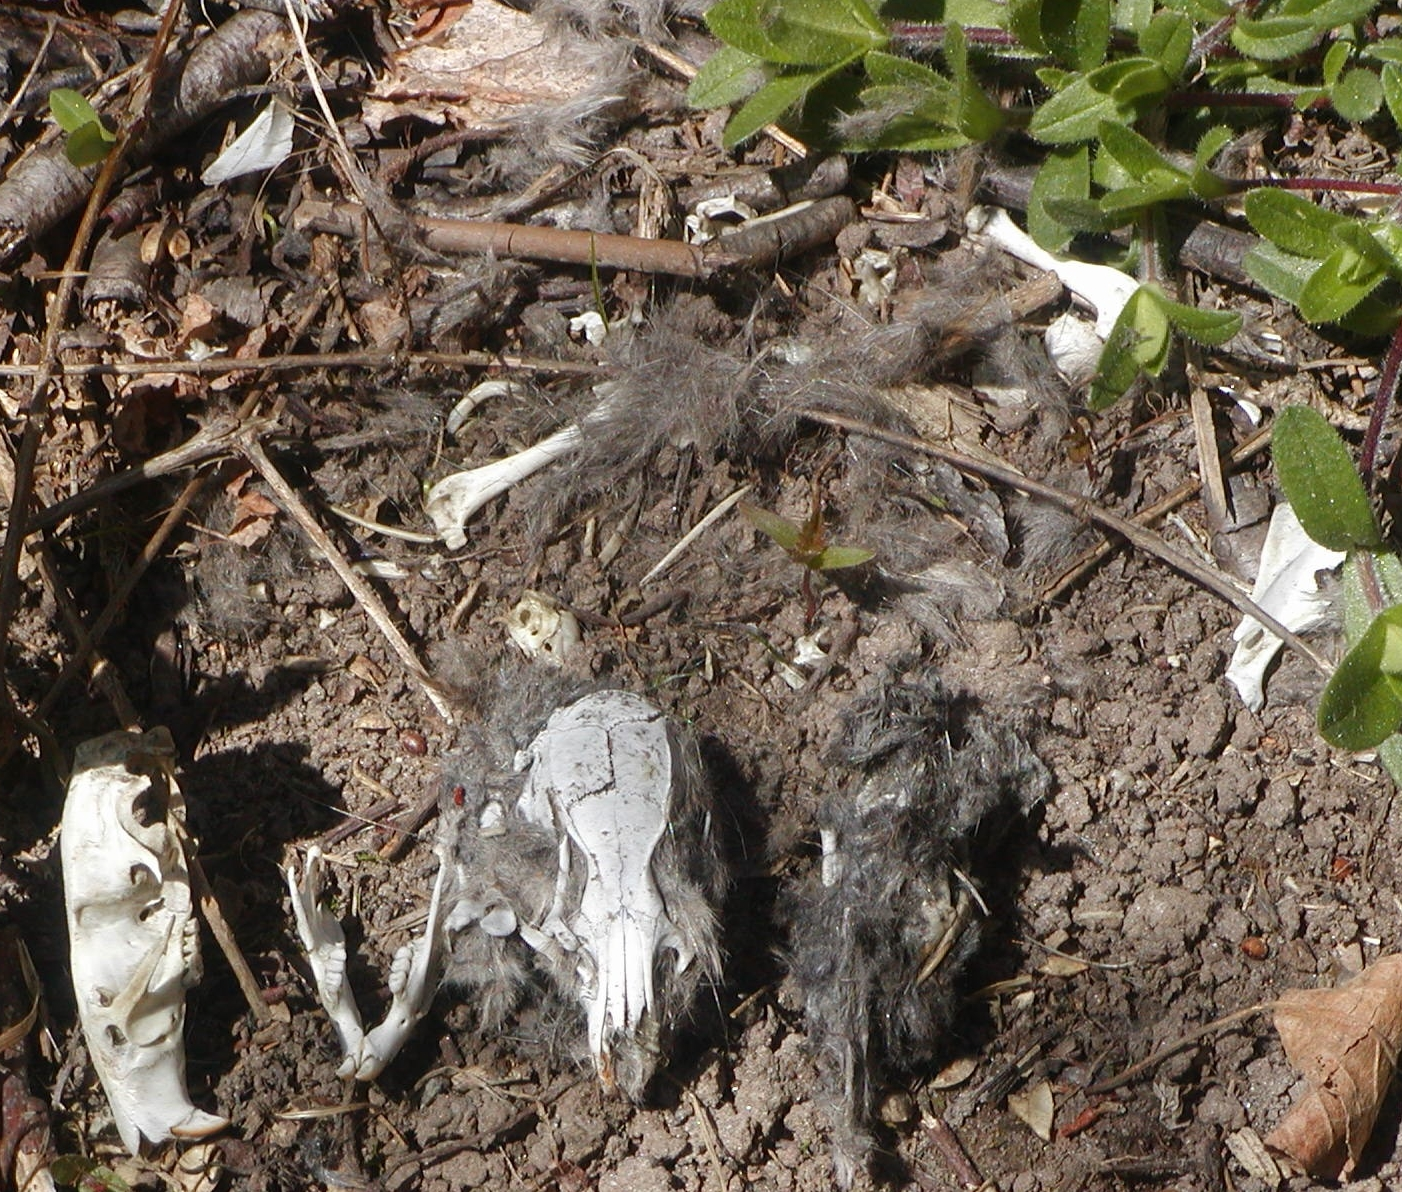 This photo shows the contents of an owl pellet (most likely a barn owl's).